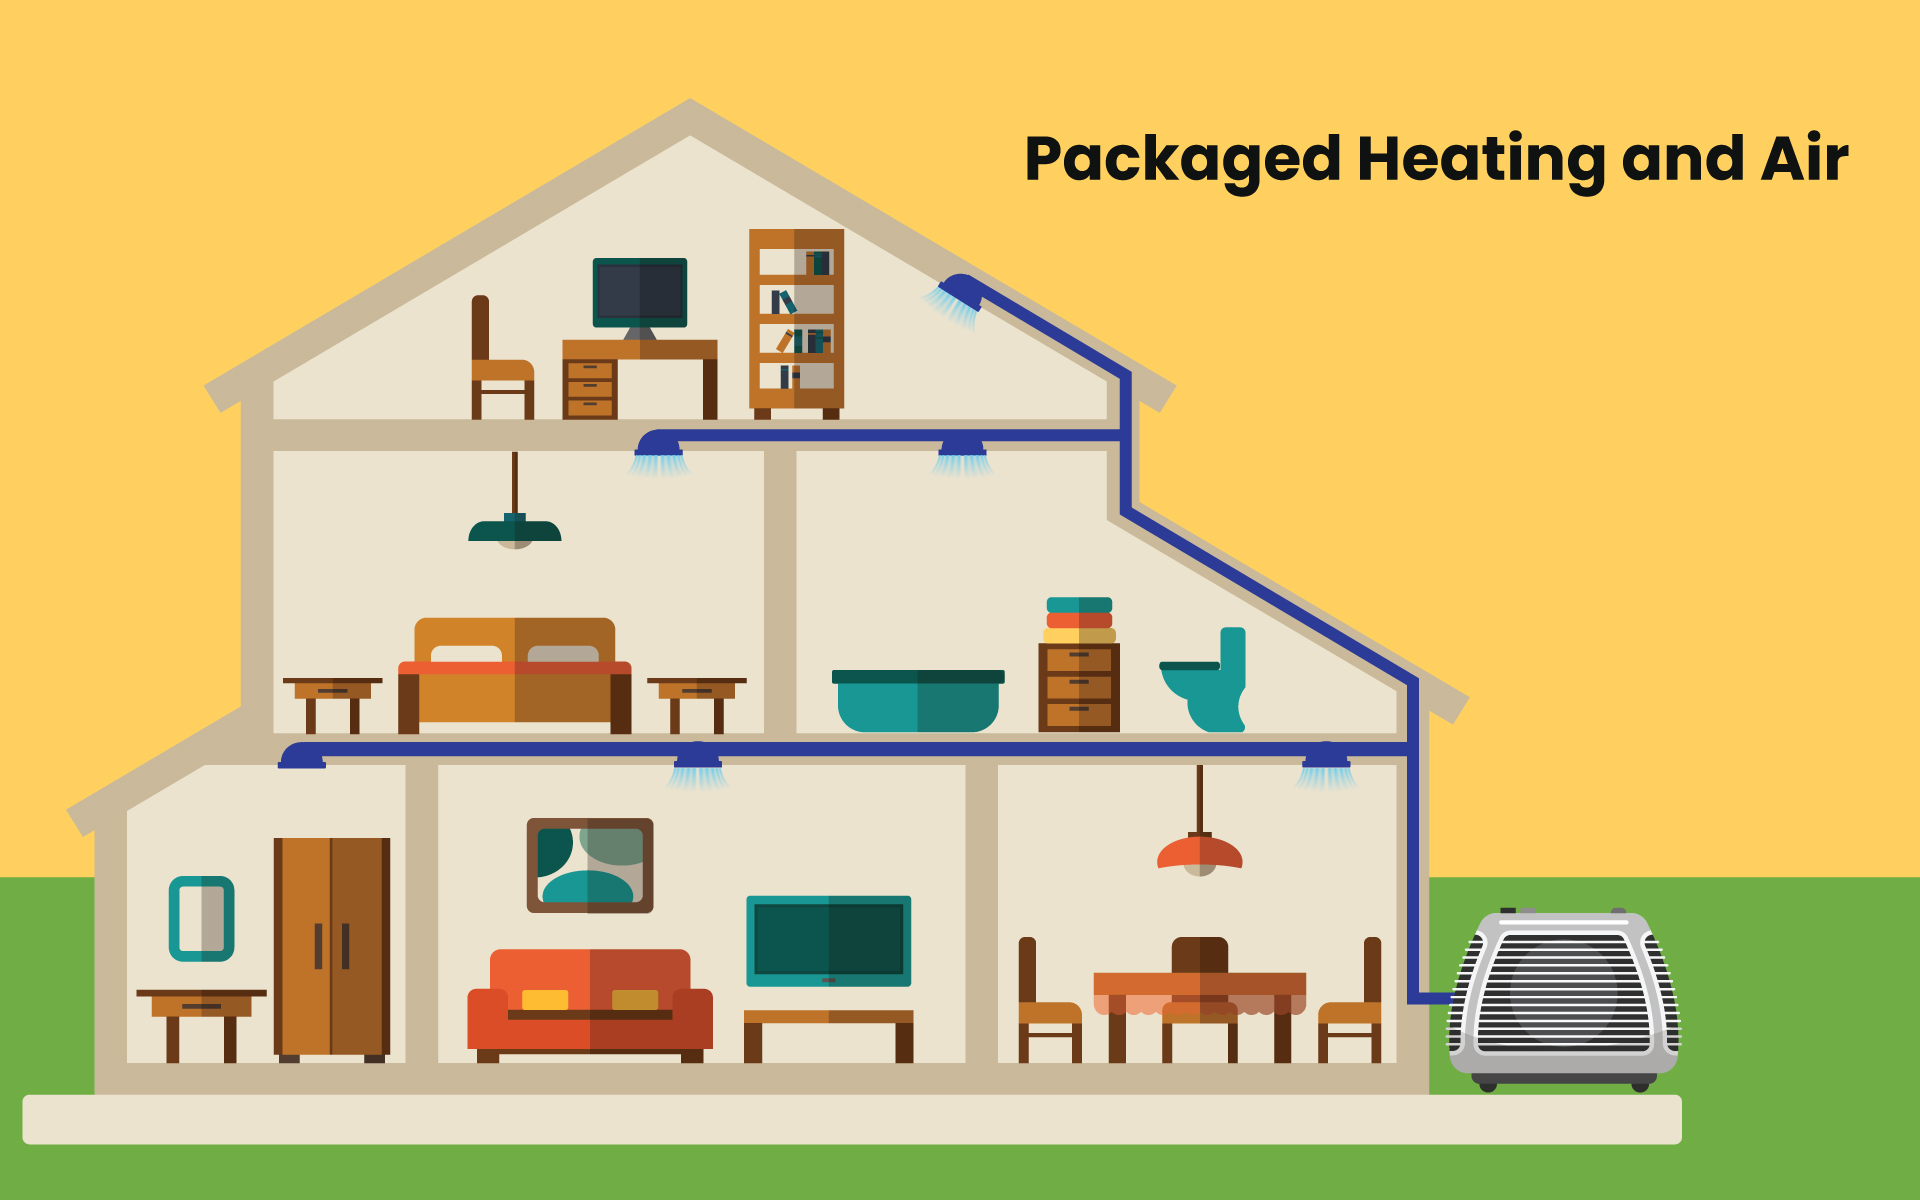 Packaged heating and air systems are easy to maintain.